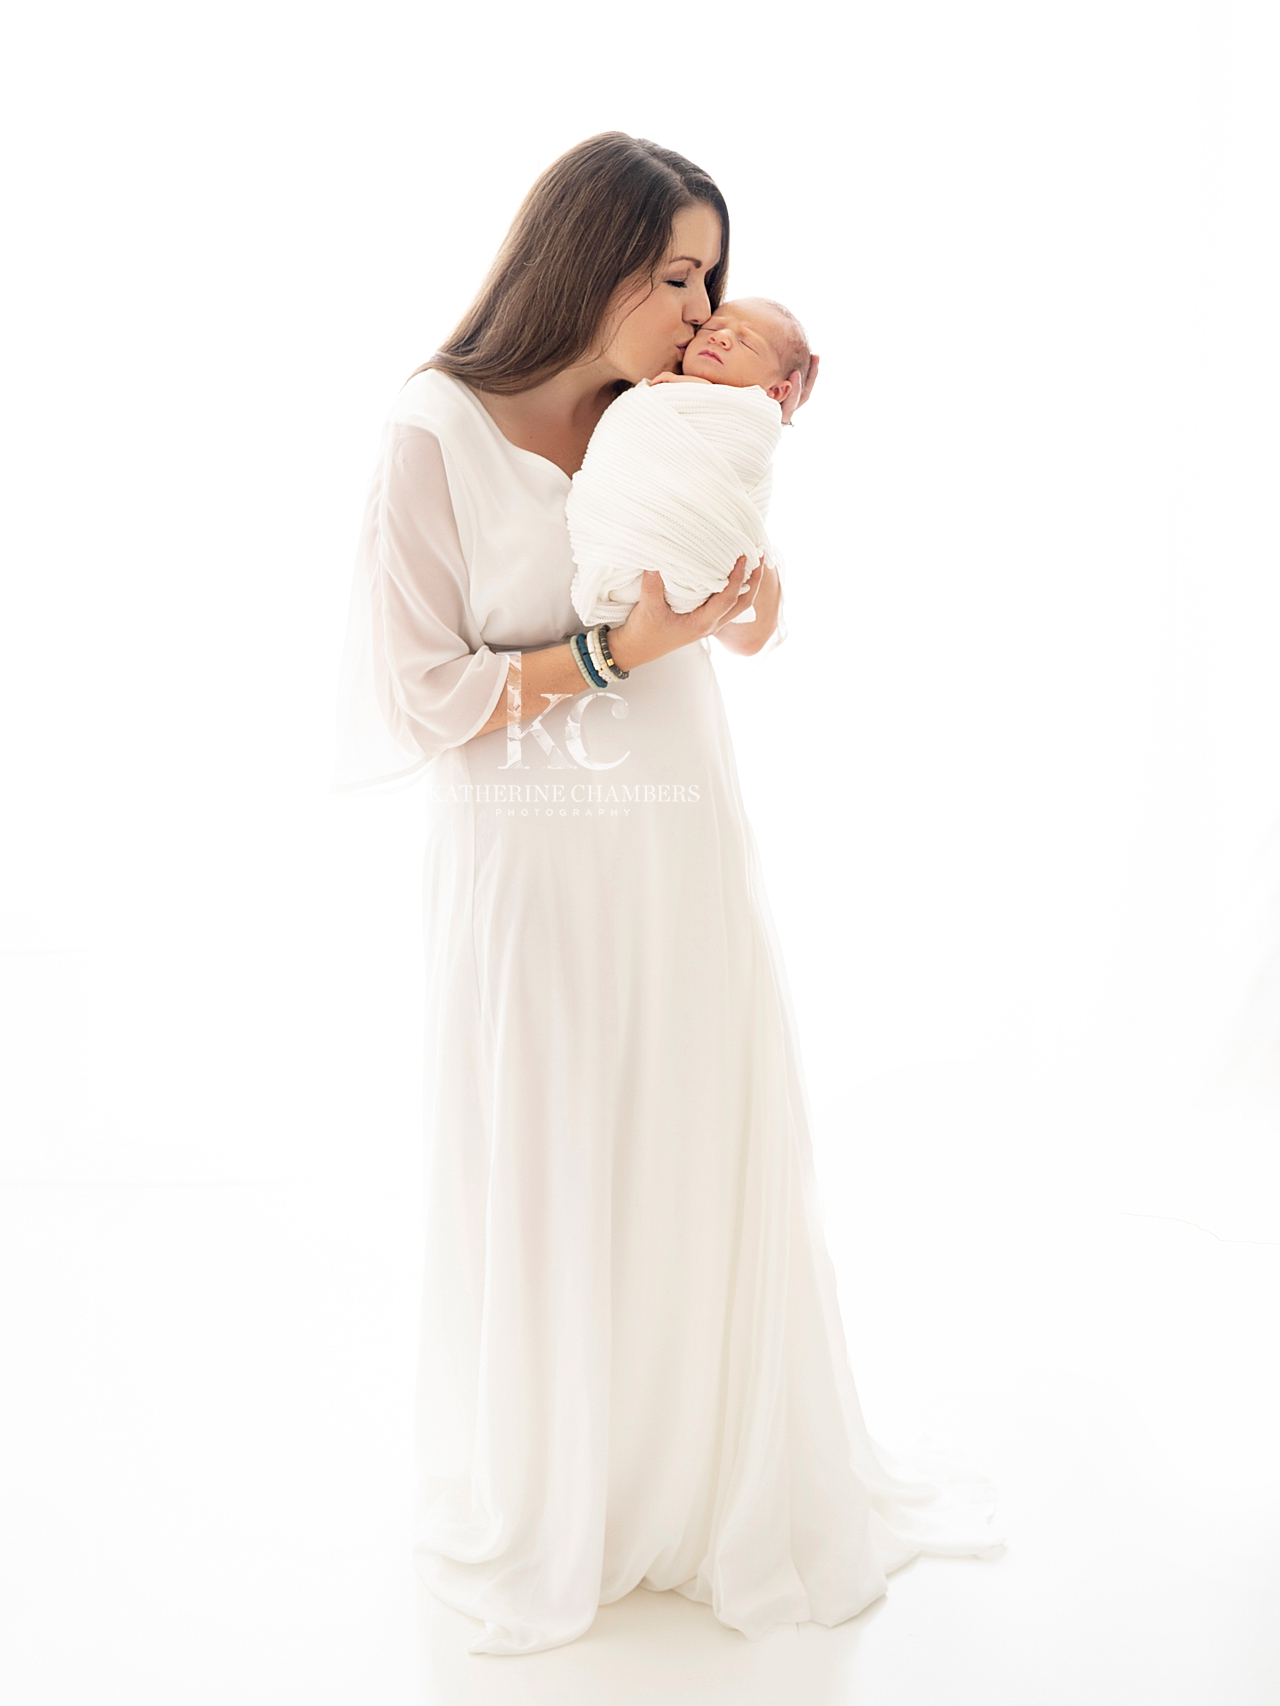 Mother and Baby, Newborn and Family Photos